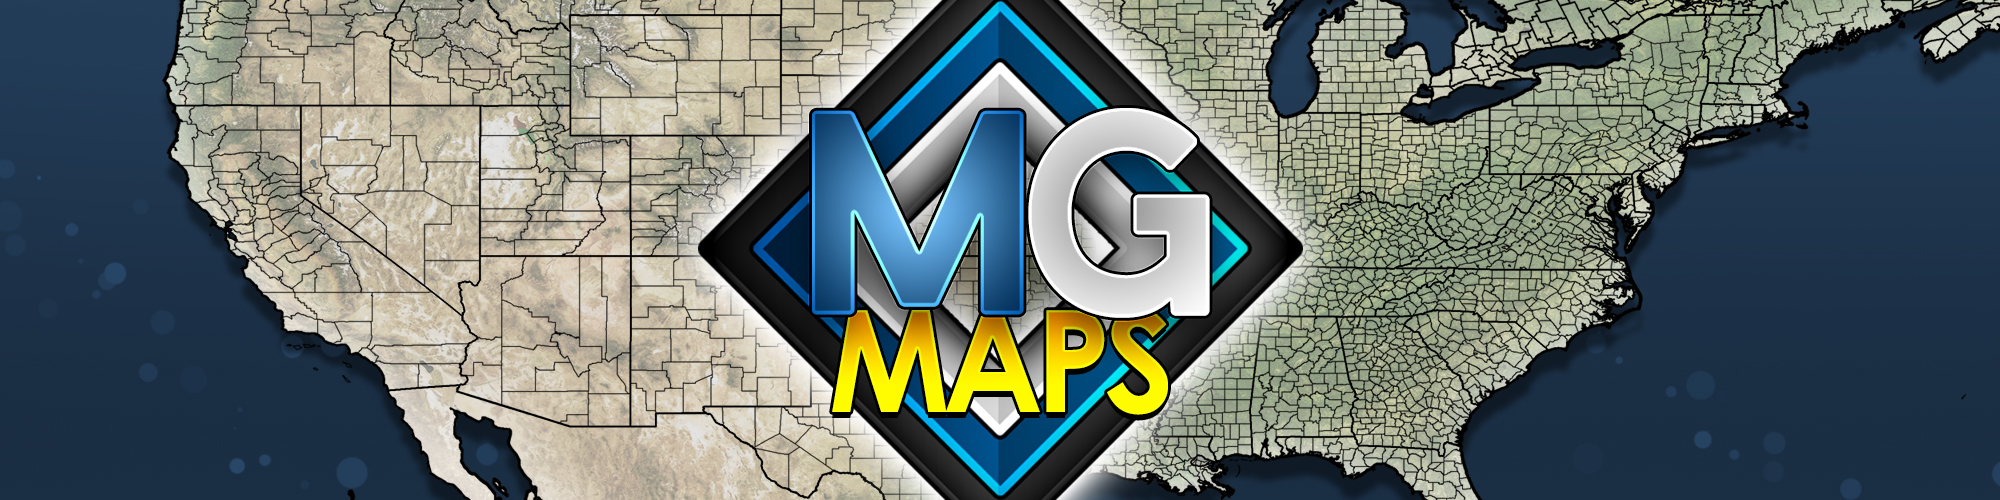 Introducing MG Maps & MetSymbol Kit